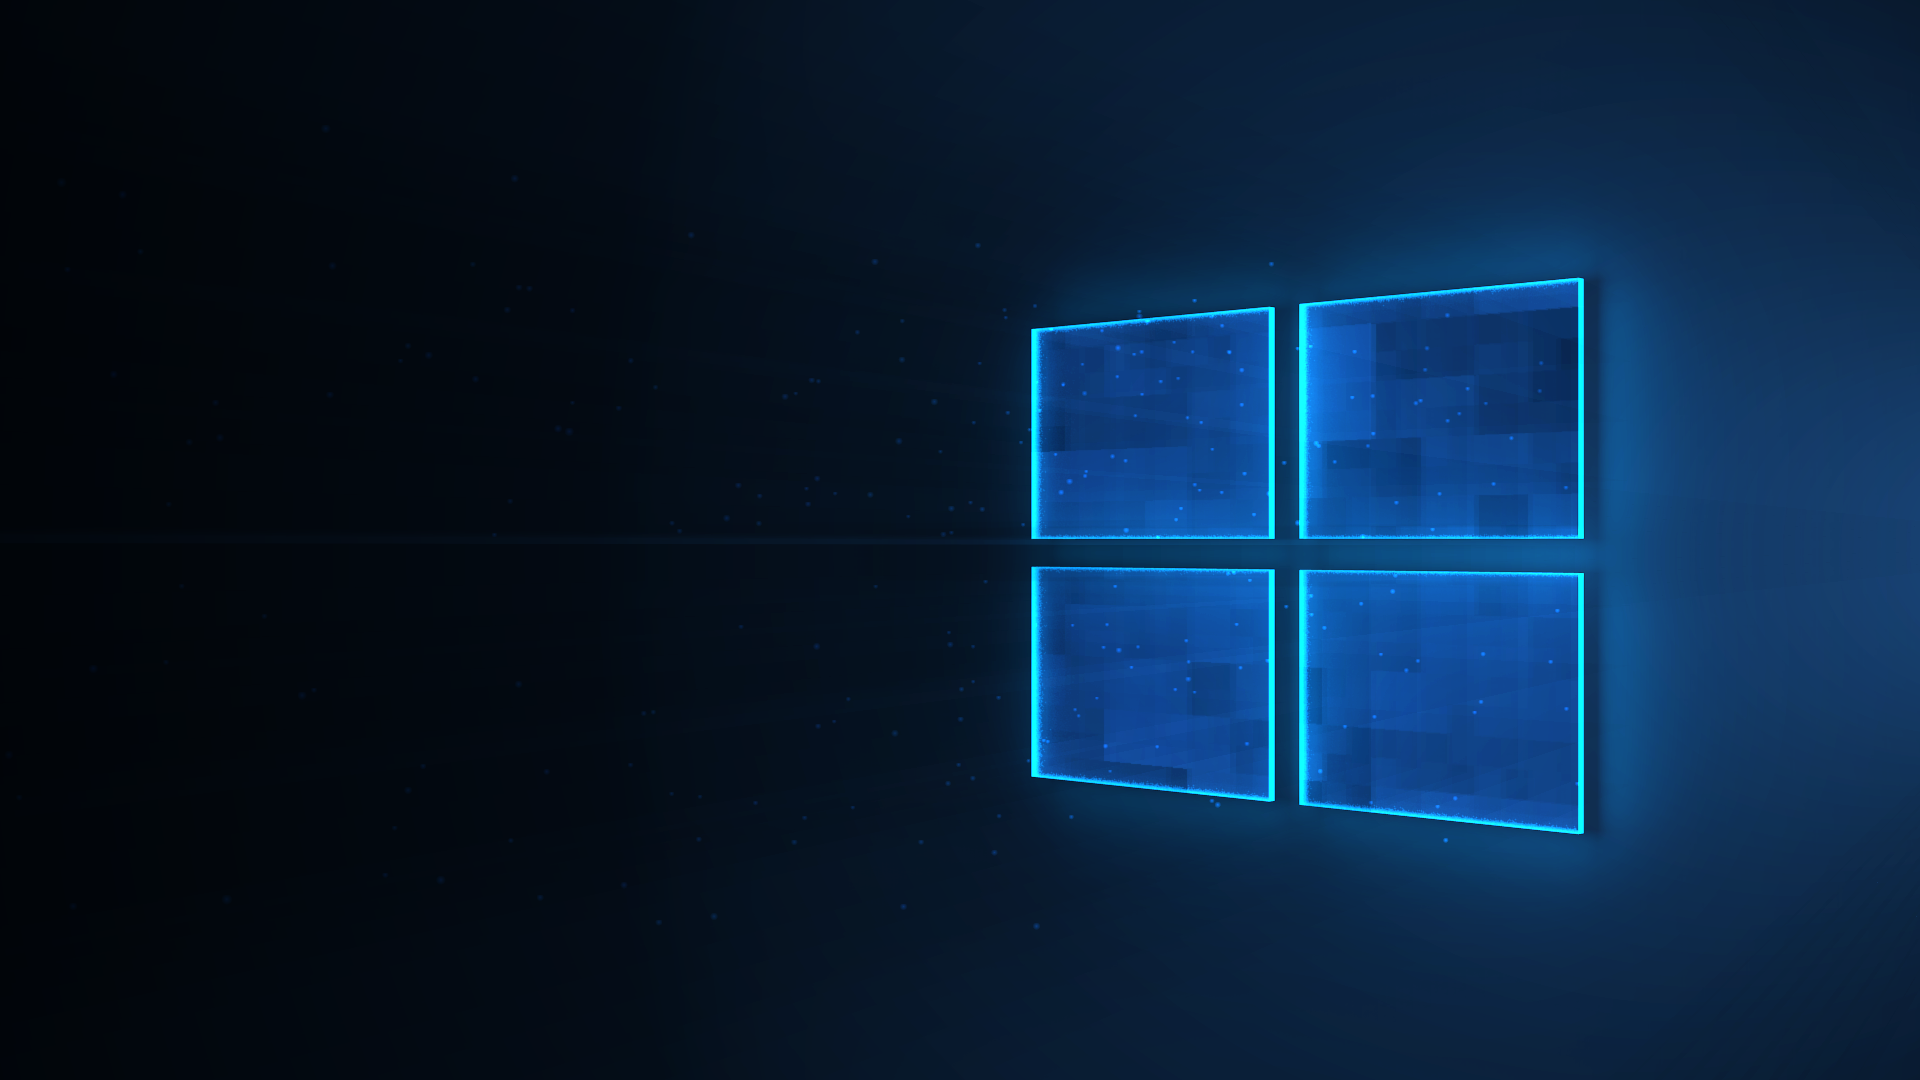 10 New Windows 8 Wallpaper Hd 3d For Desktop Full Hd 1920: Windows 10 Tendrá Una Nueva Opción Para Restablecer El